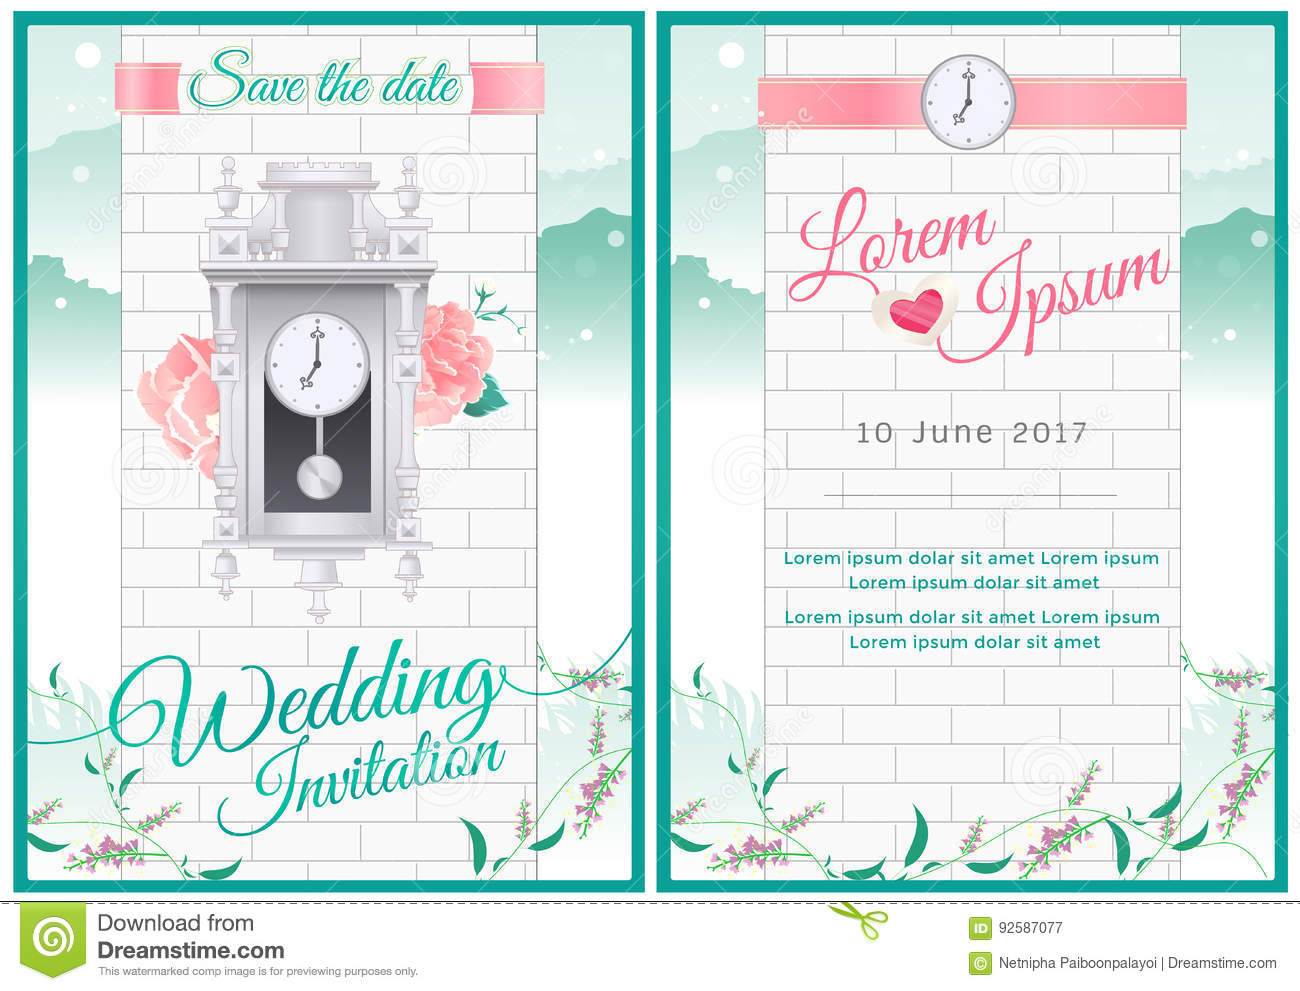 Around The Clock Wedding Card Invitation With Green Nature And V ...